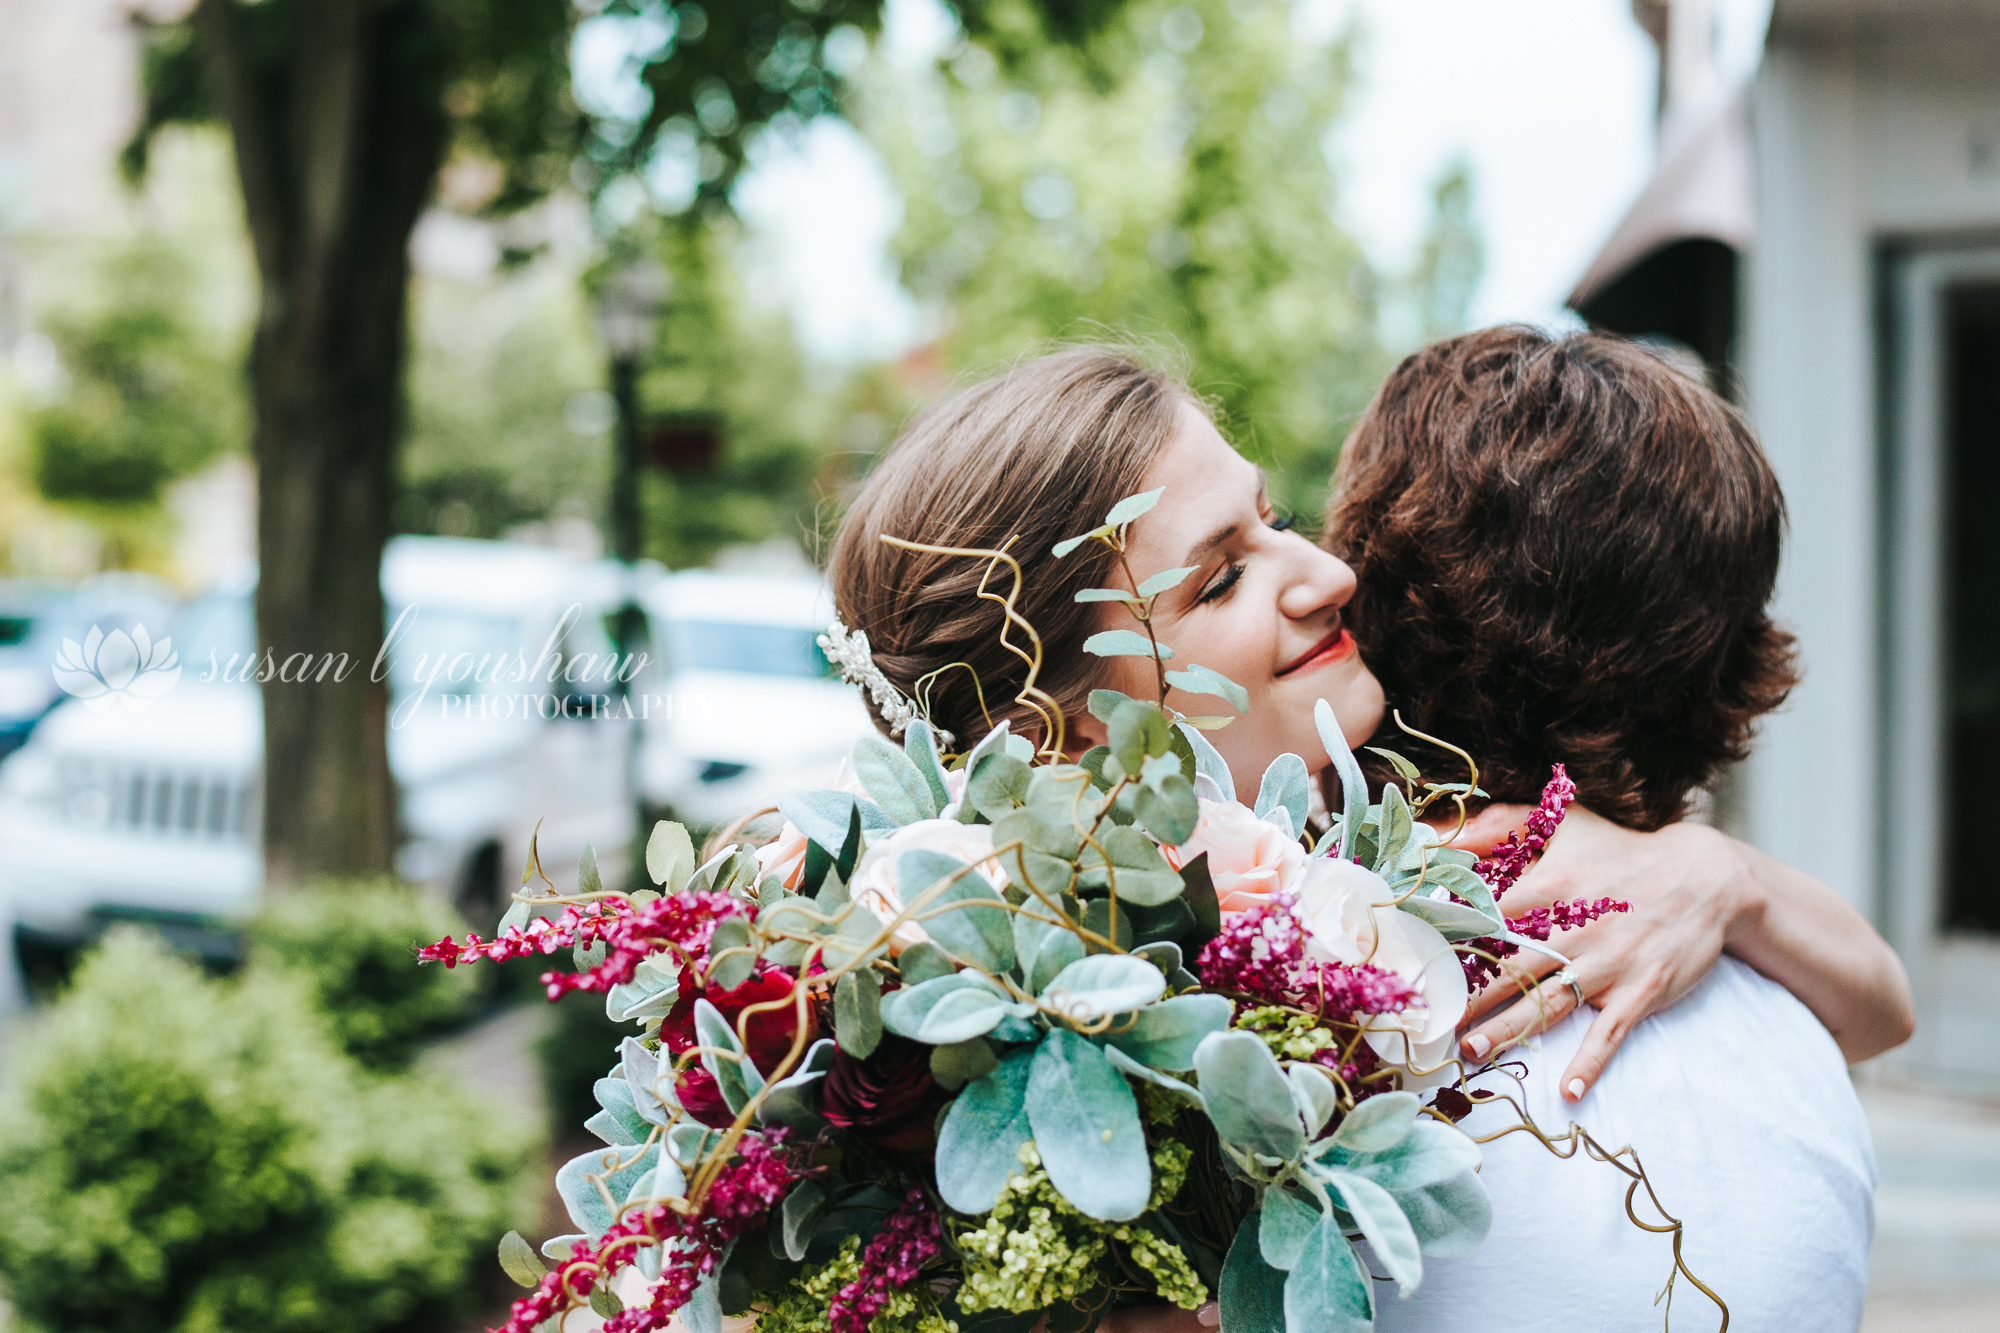 Chynna and John Wedding 05-18-2019 SLY Photography-48.jpg